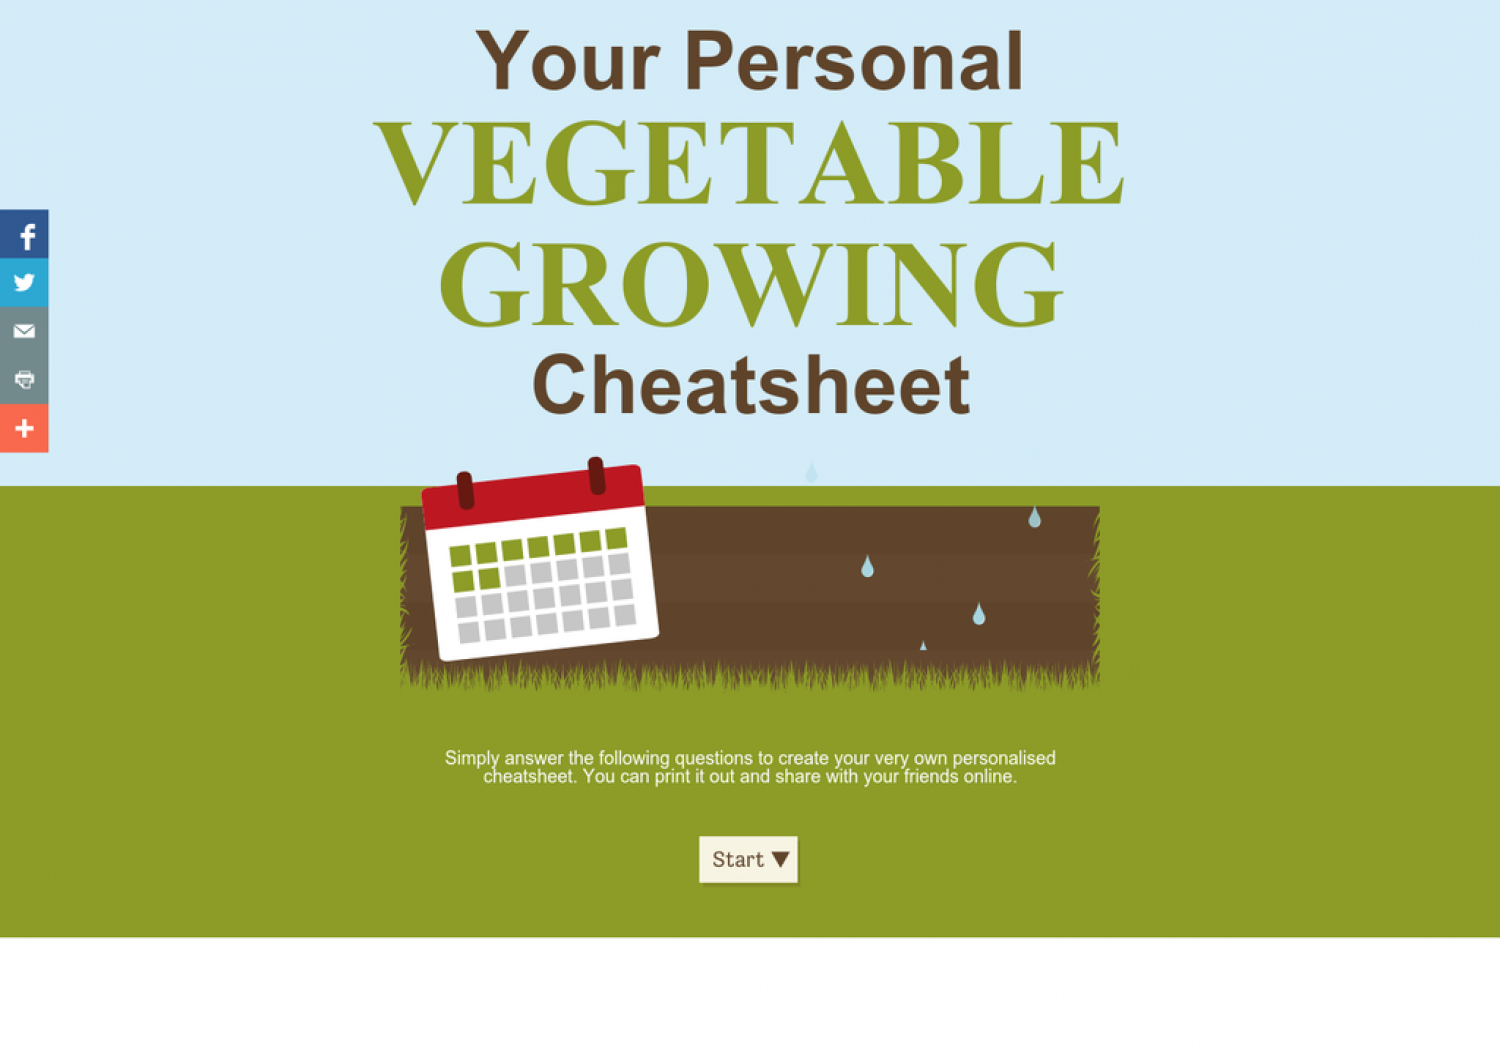 Your Personal Vegetable Growing Cheatsheet Infographic